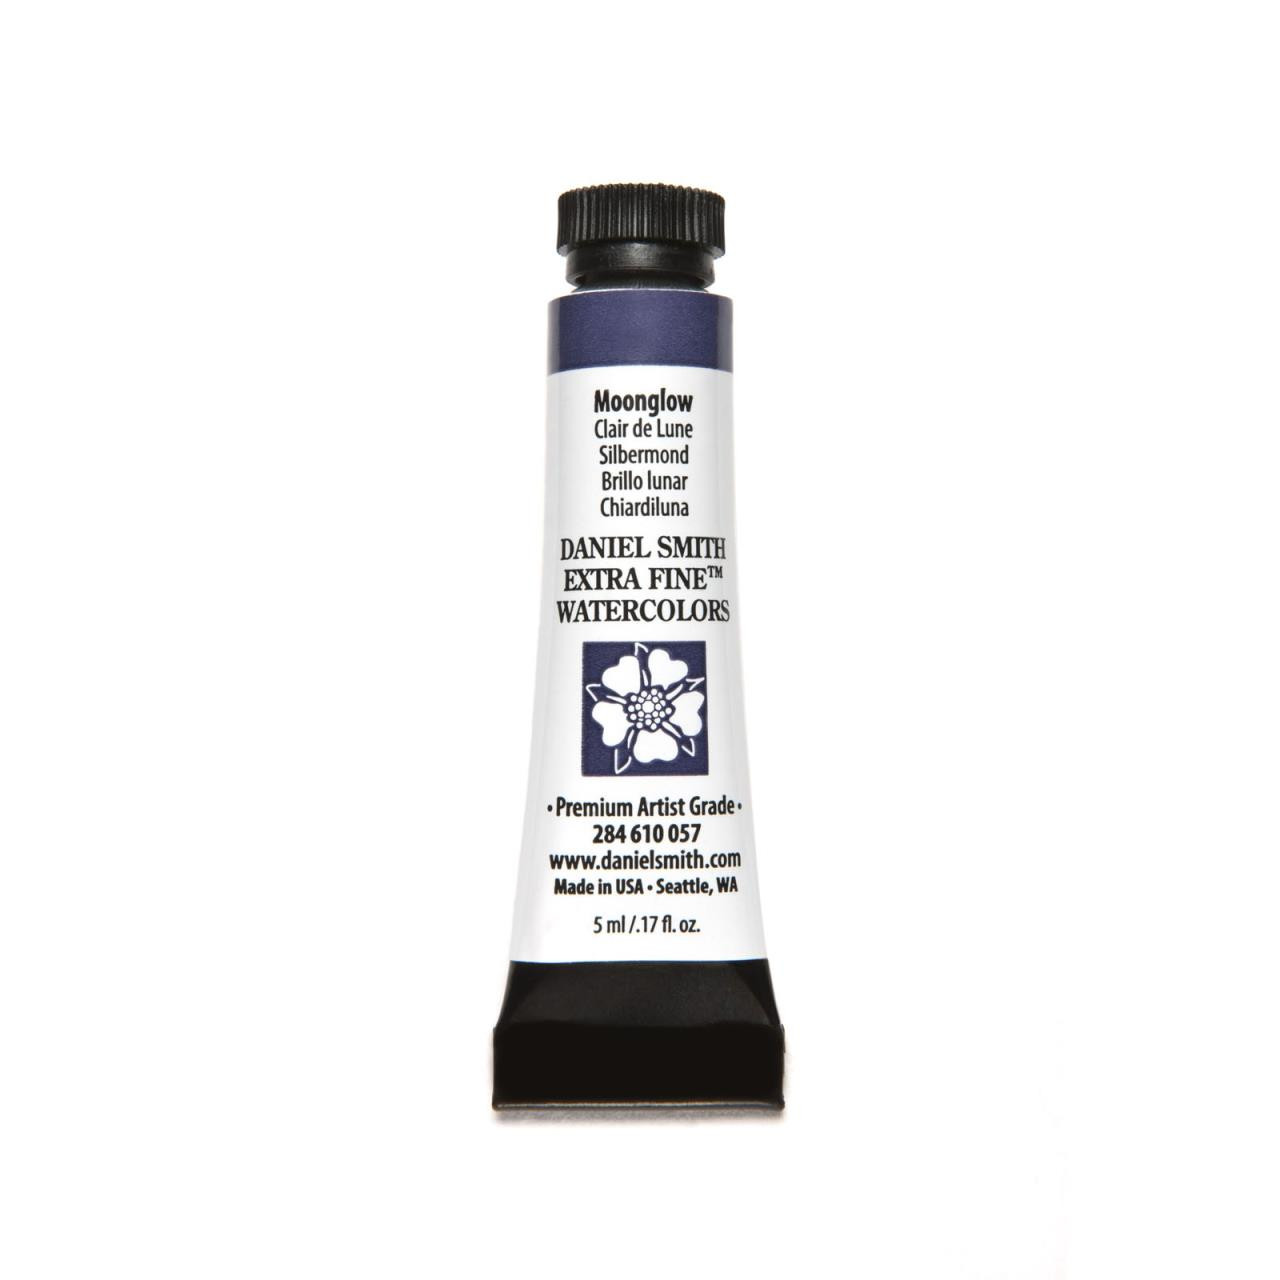 Moonglow, DANIEL SMITH Extra Fine Watercolors 5ml Tubes -